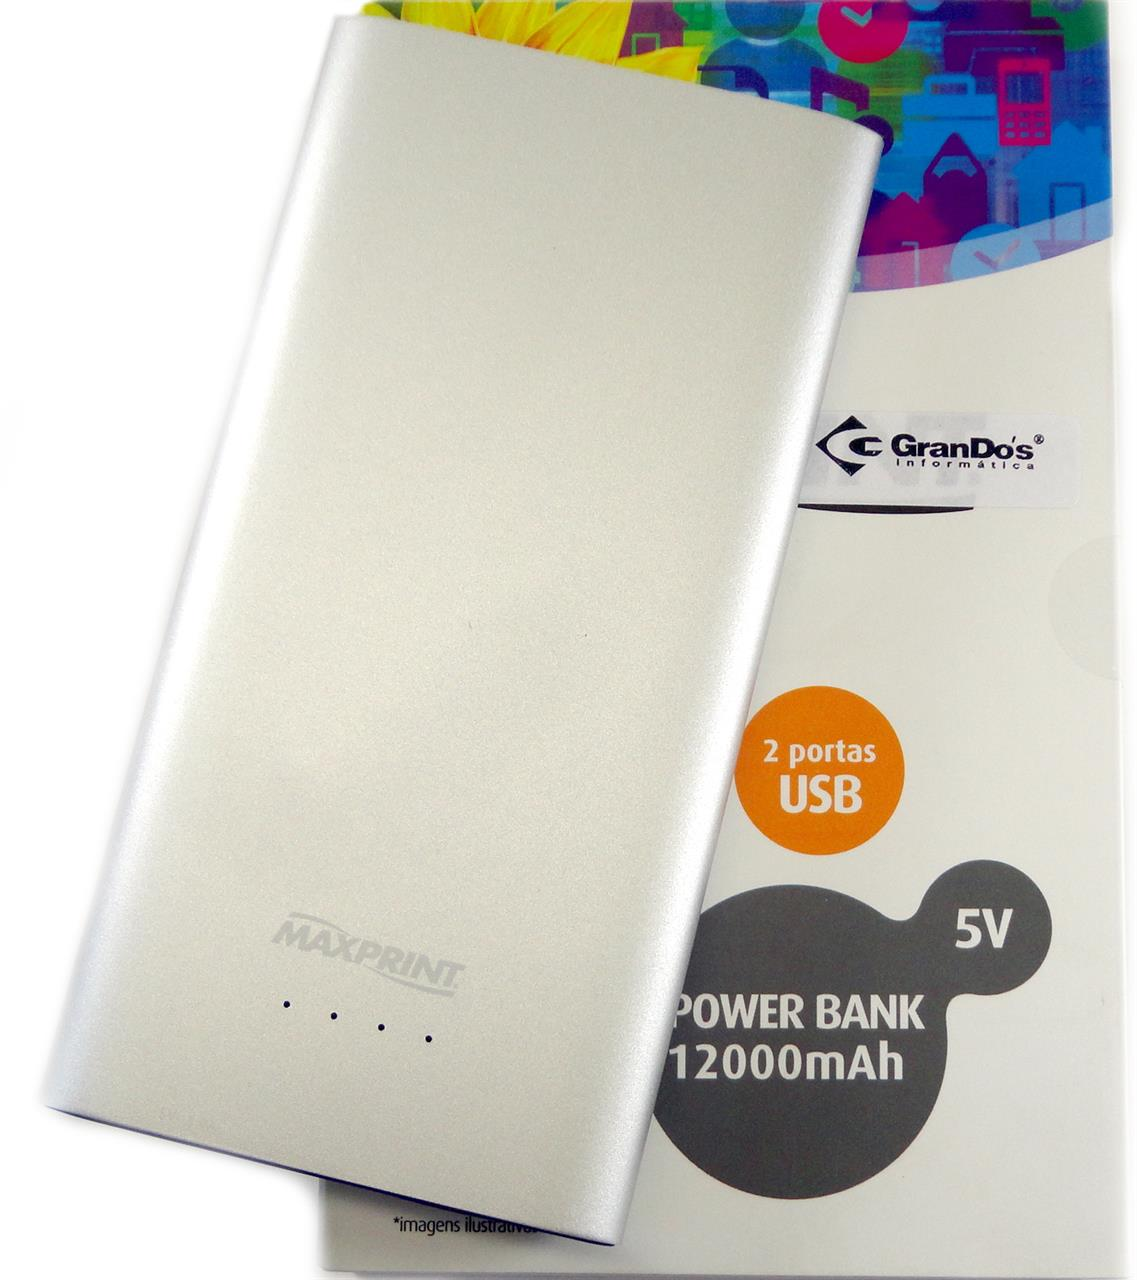 Power Bank Dual Alumi 12000mah Maxprint